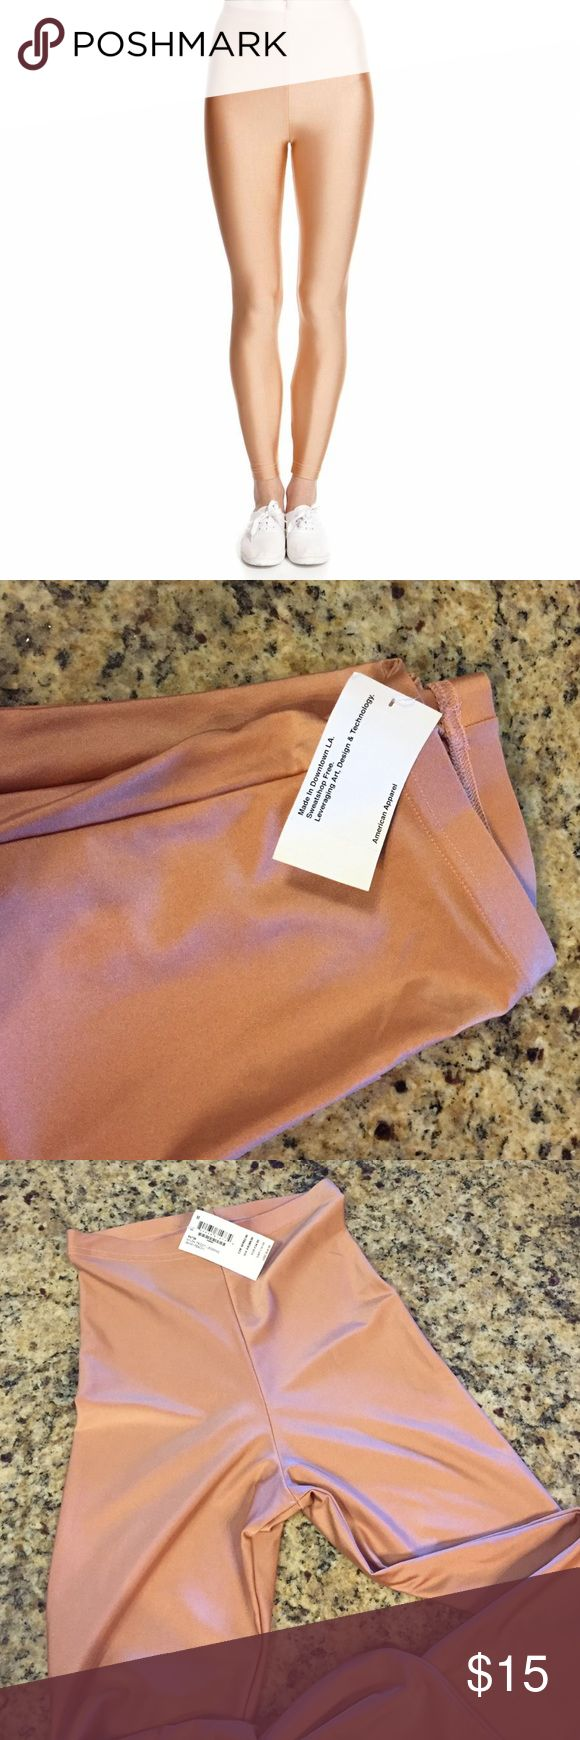 """American Apparel Nylon Tricot Legging ✨ unworn with tags ✨ comfortable and stretchy leggings in """"shiny peach"""" 🍑 American Apparel Pants Leggings"""